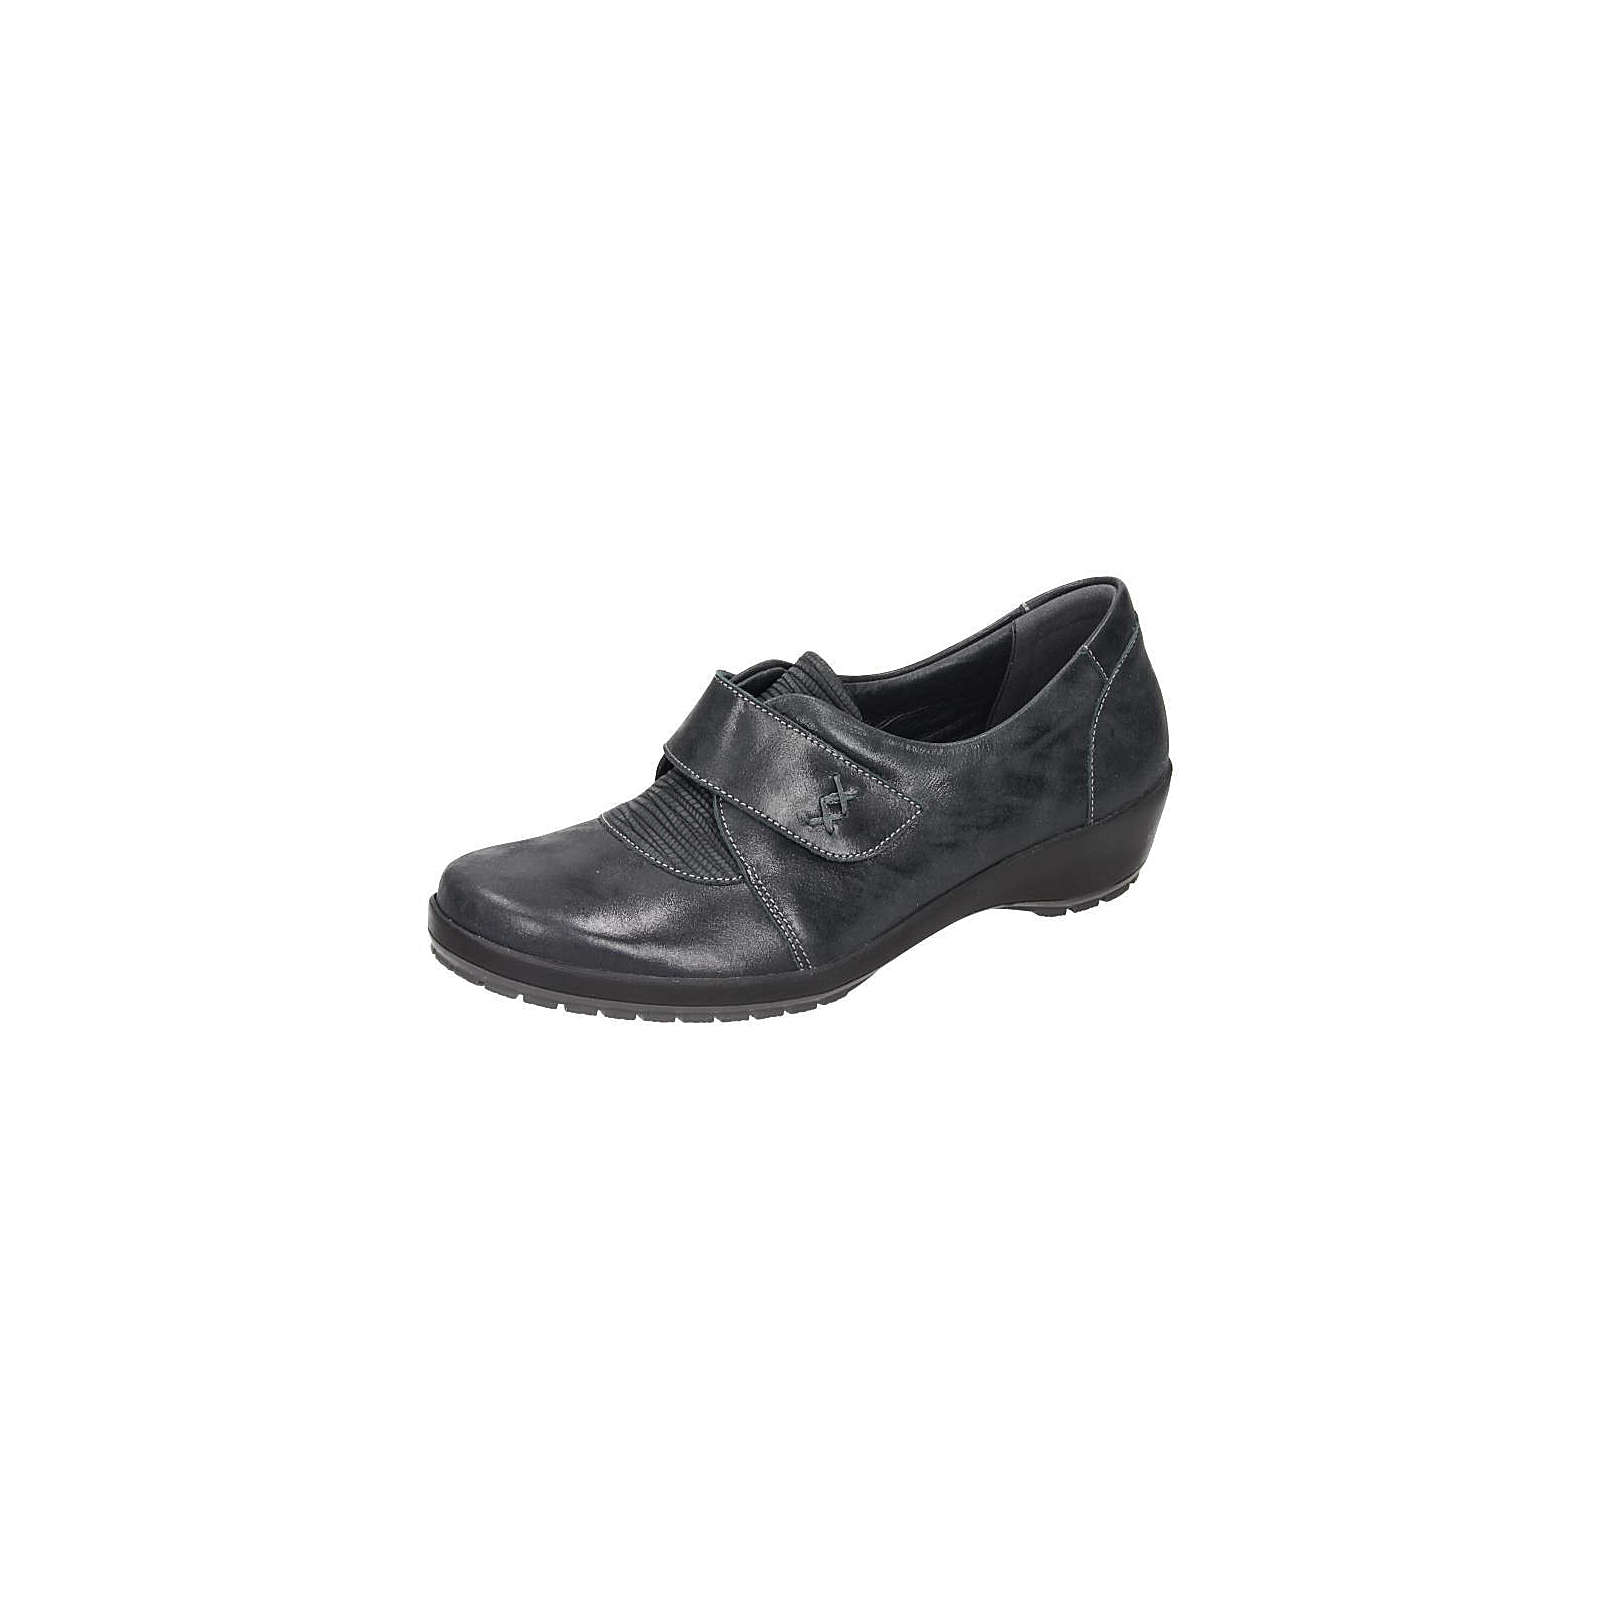 Comfortabel Damen Slipper anthrazit Damen Gr. 39